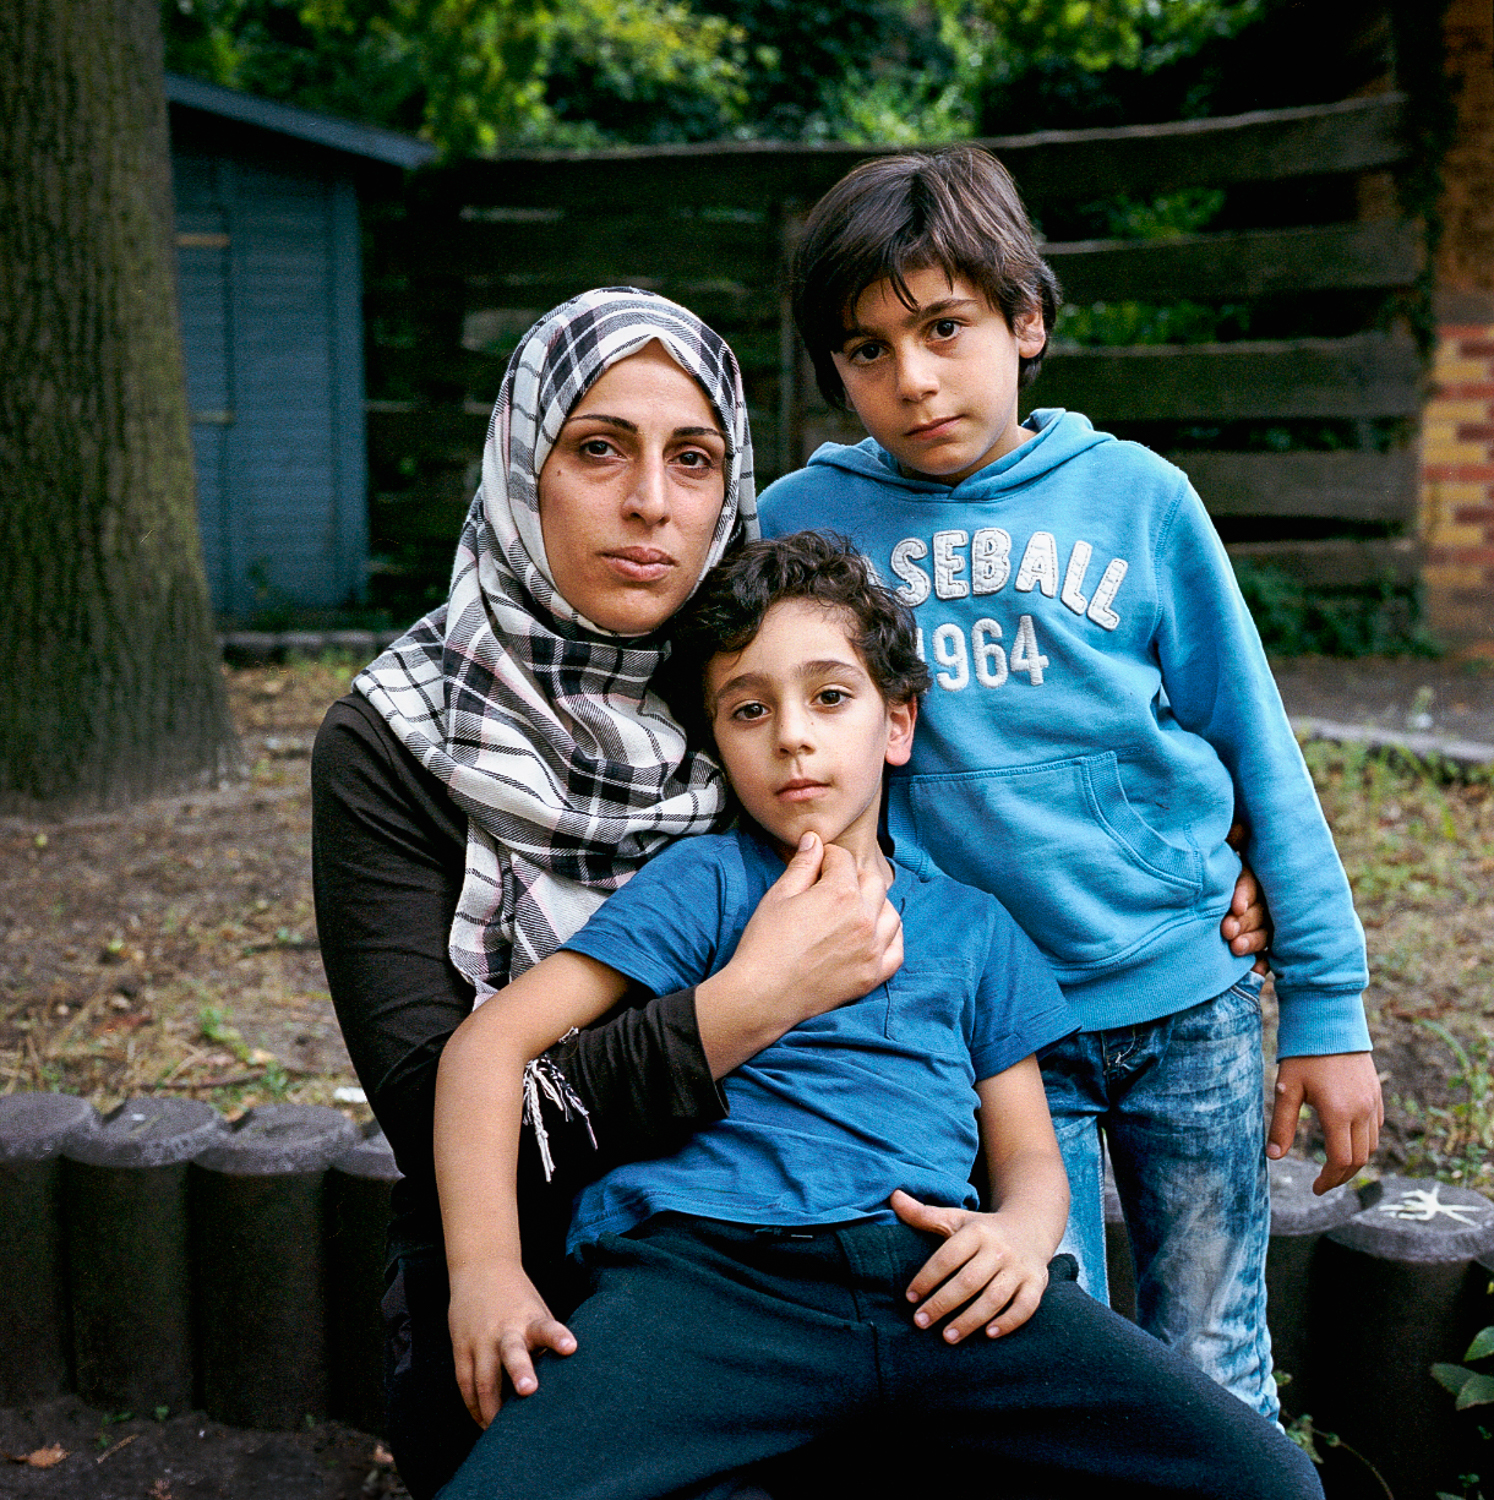 AFTER SYRIA: SYRIAN REFUGEES, BERLIN